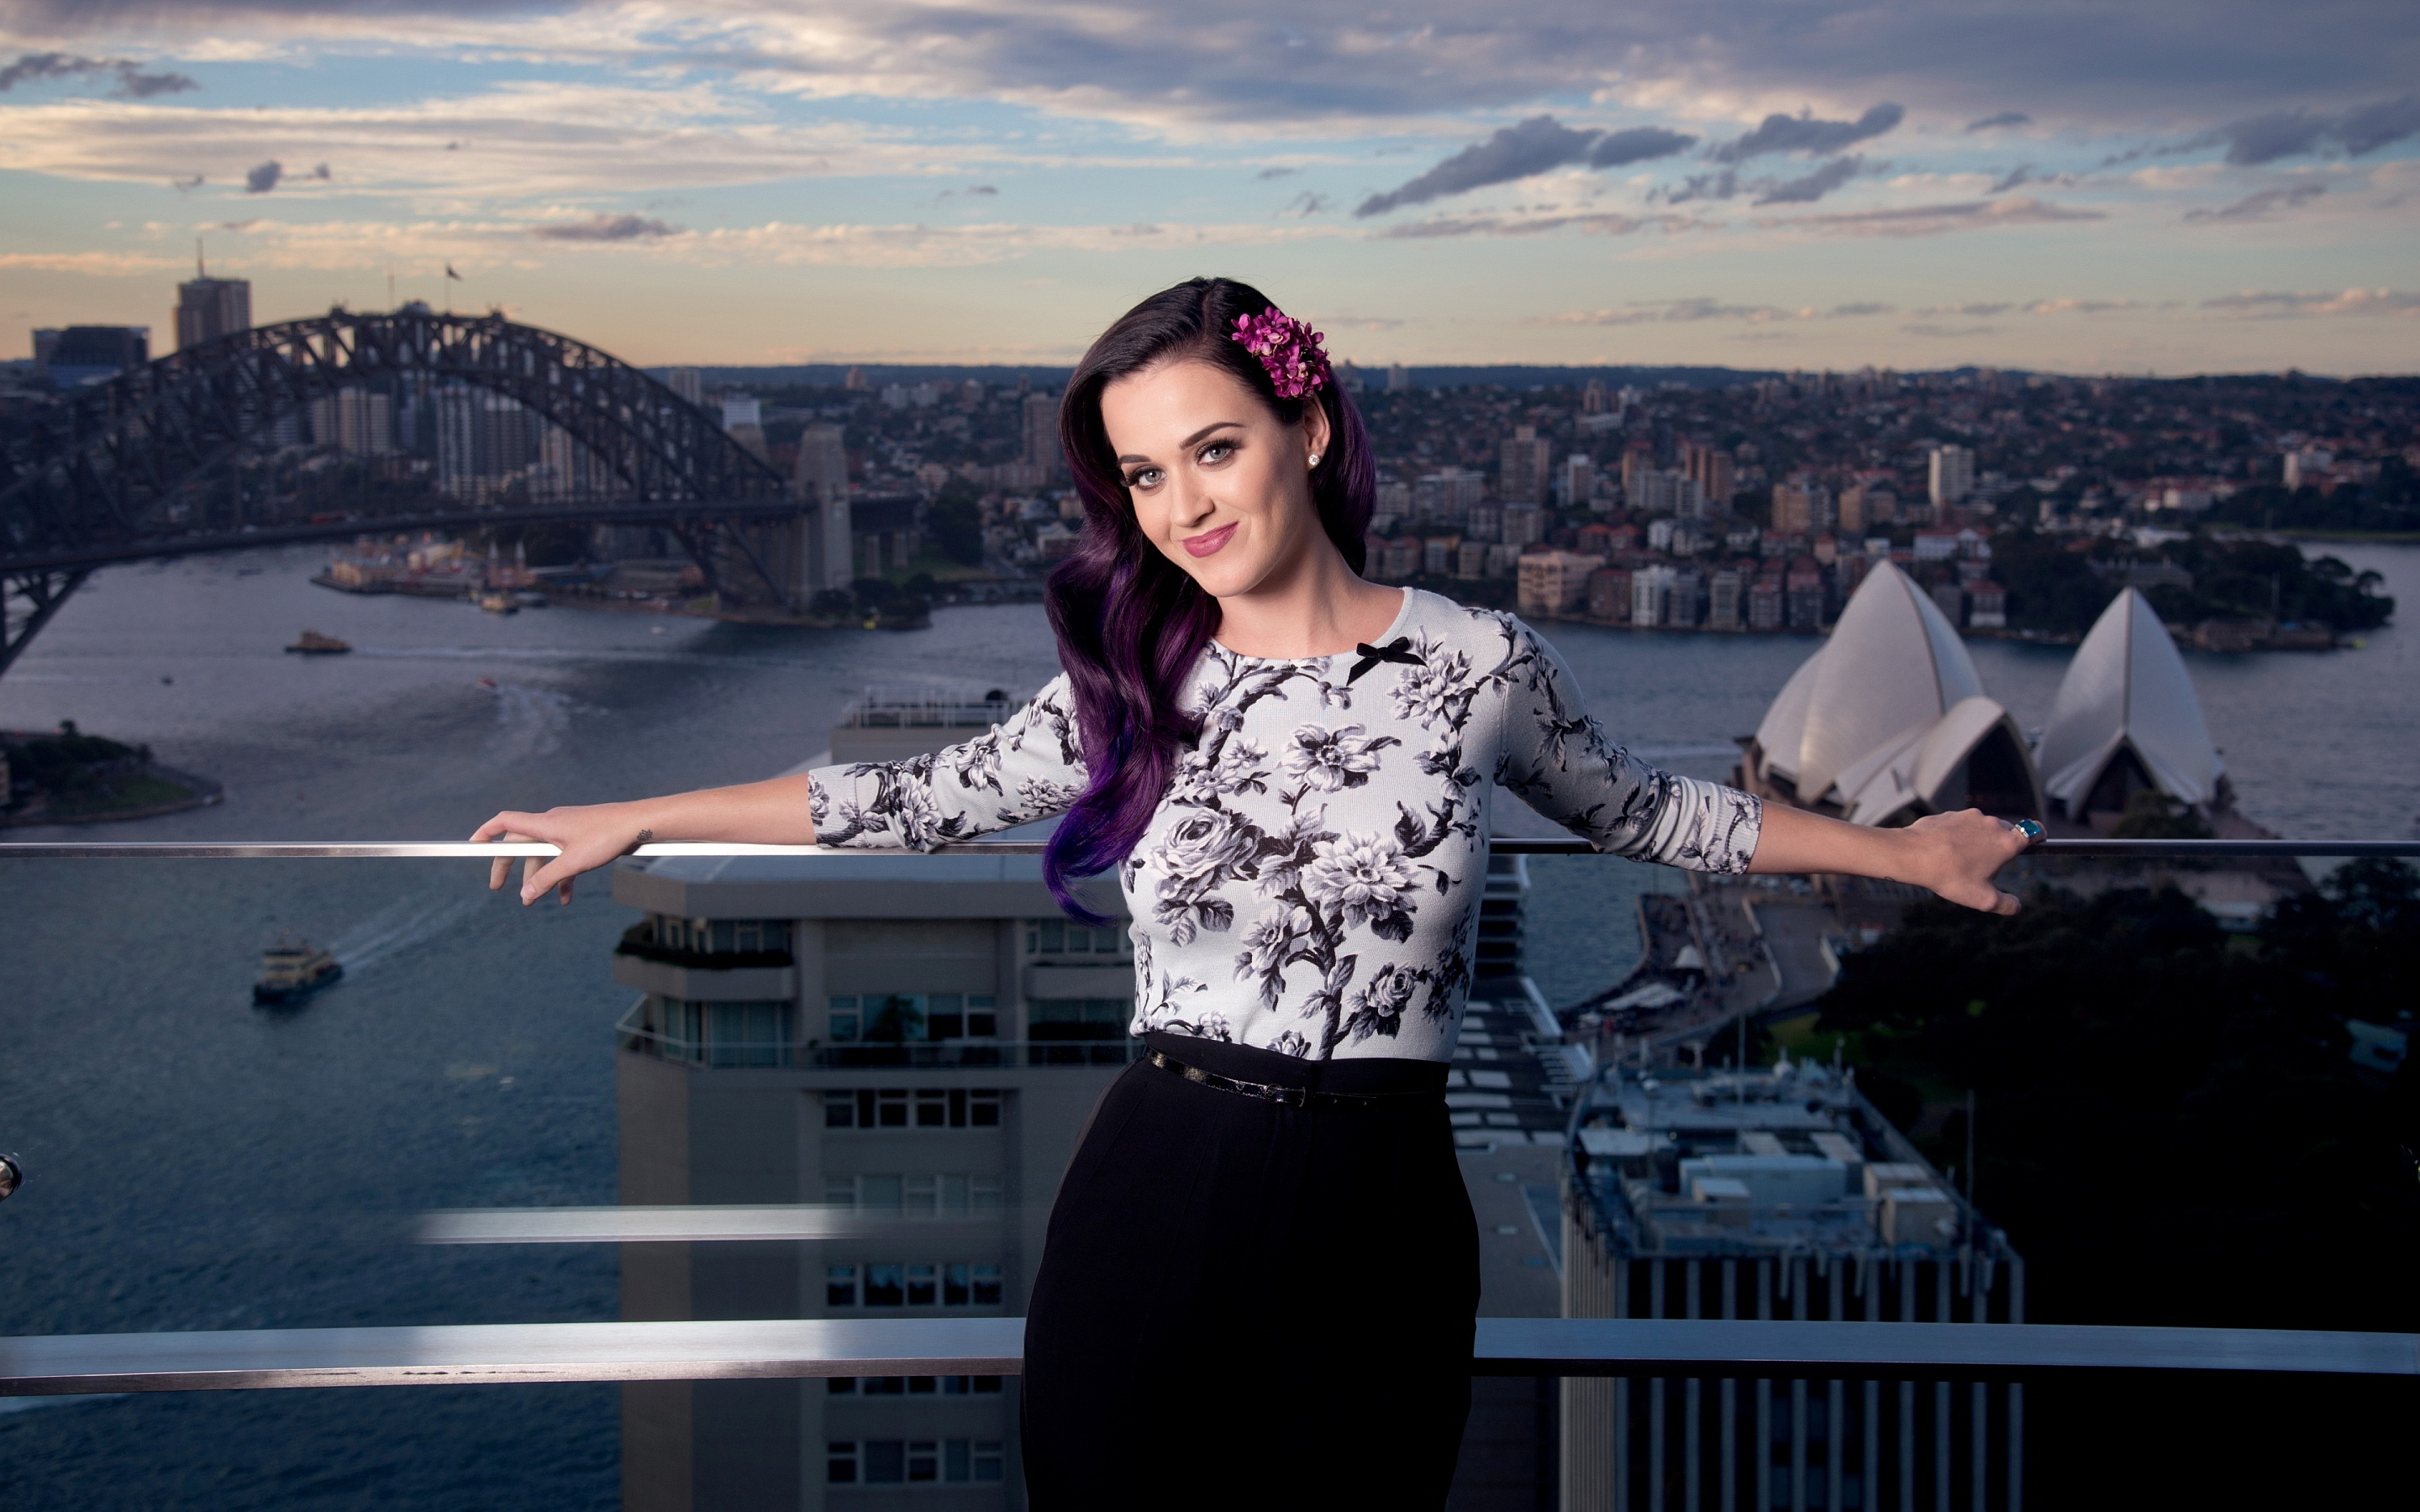 Katy Perry Wallpaper city